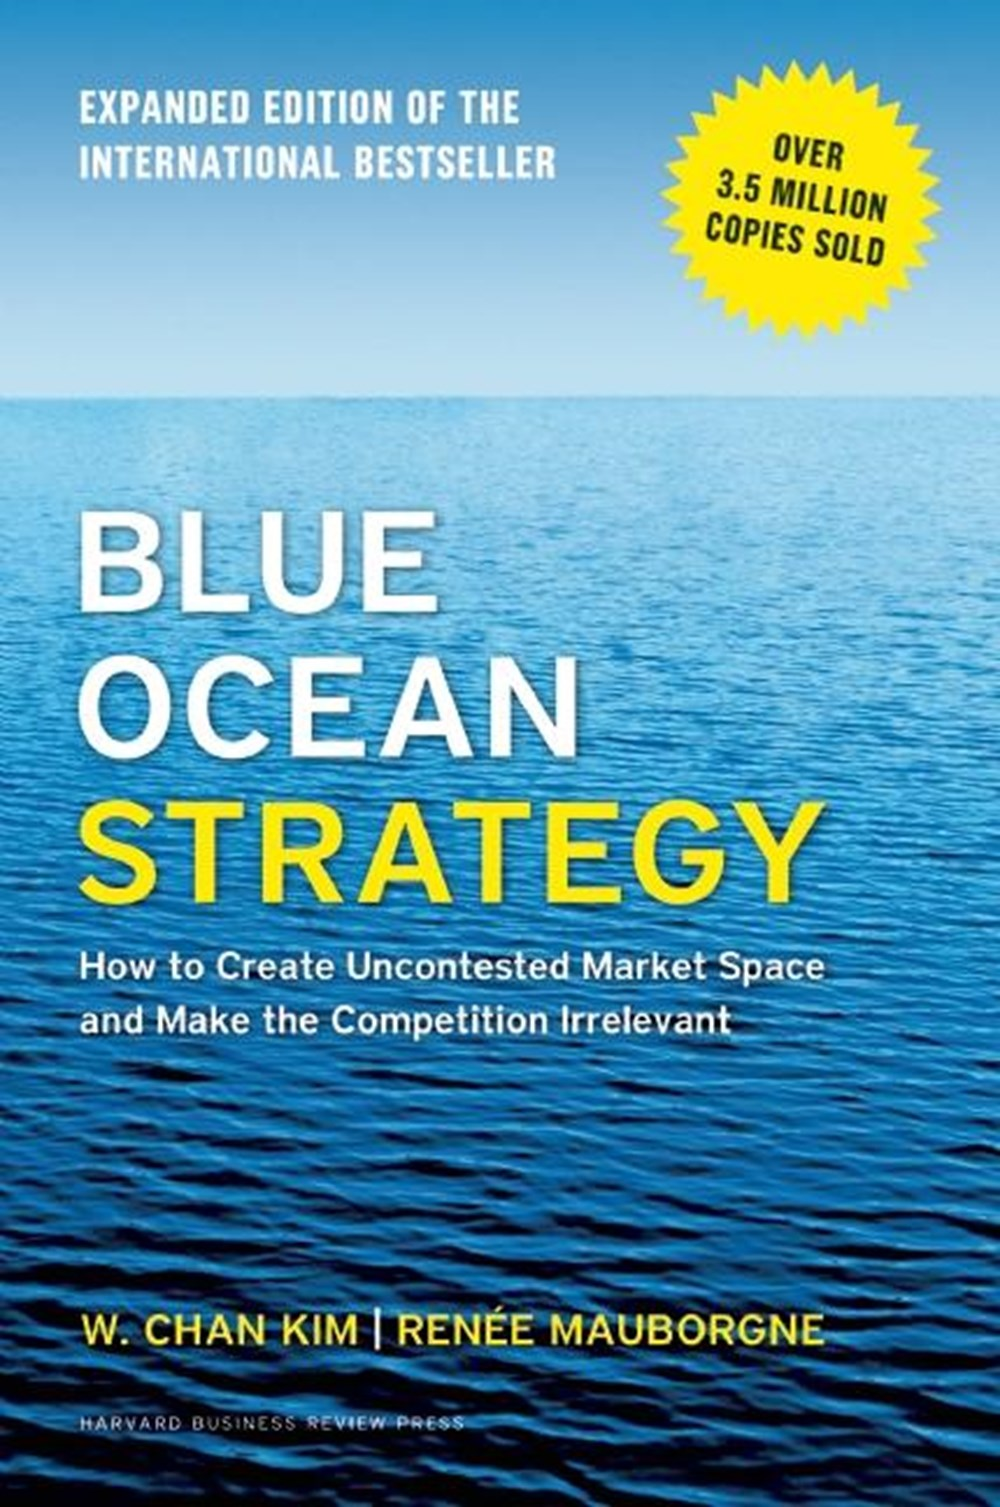 Blue Ocean Strategy, Expanded Edition How to Create Uncontested Market Space and Make the Competitio